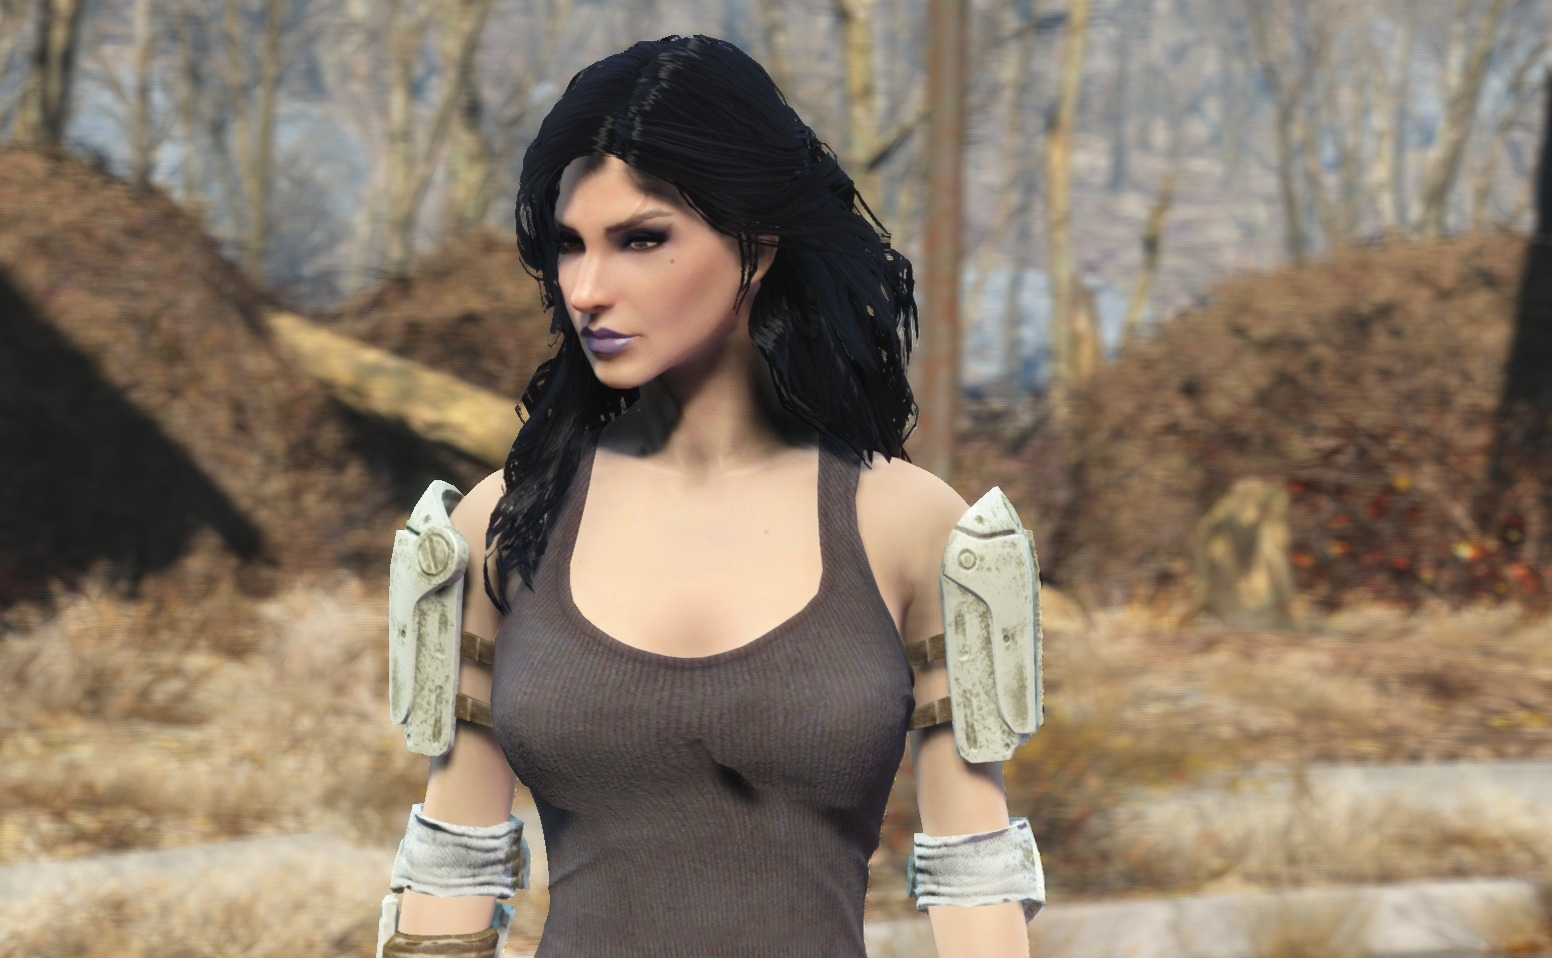 Yennefer Hair With Physics Fallout 4 Mod - Www imagez co